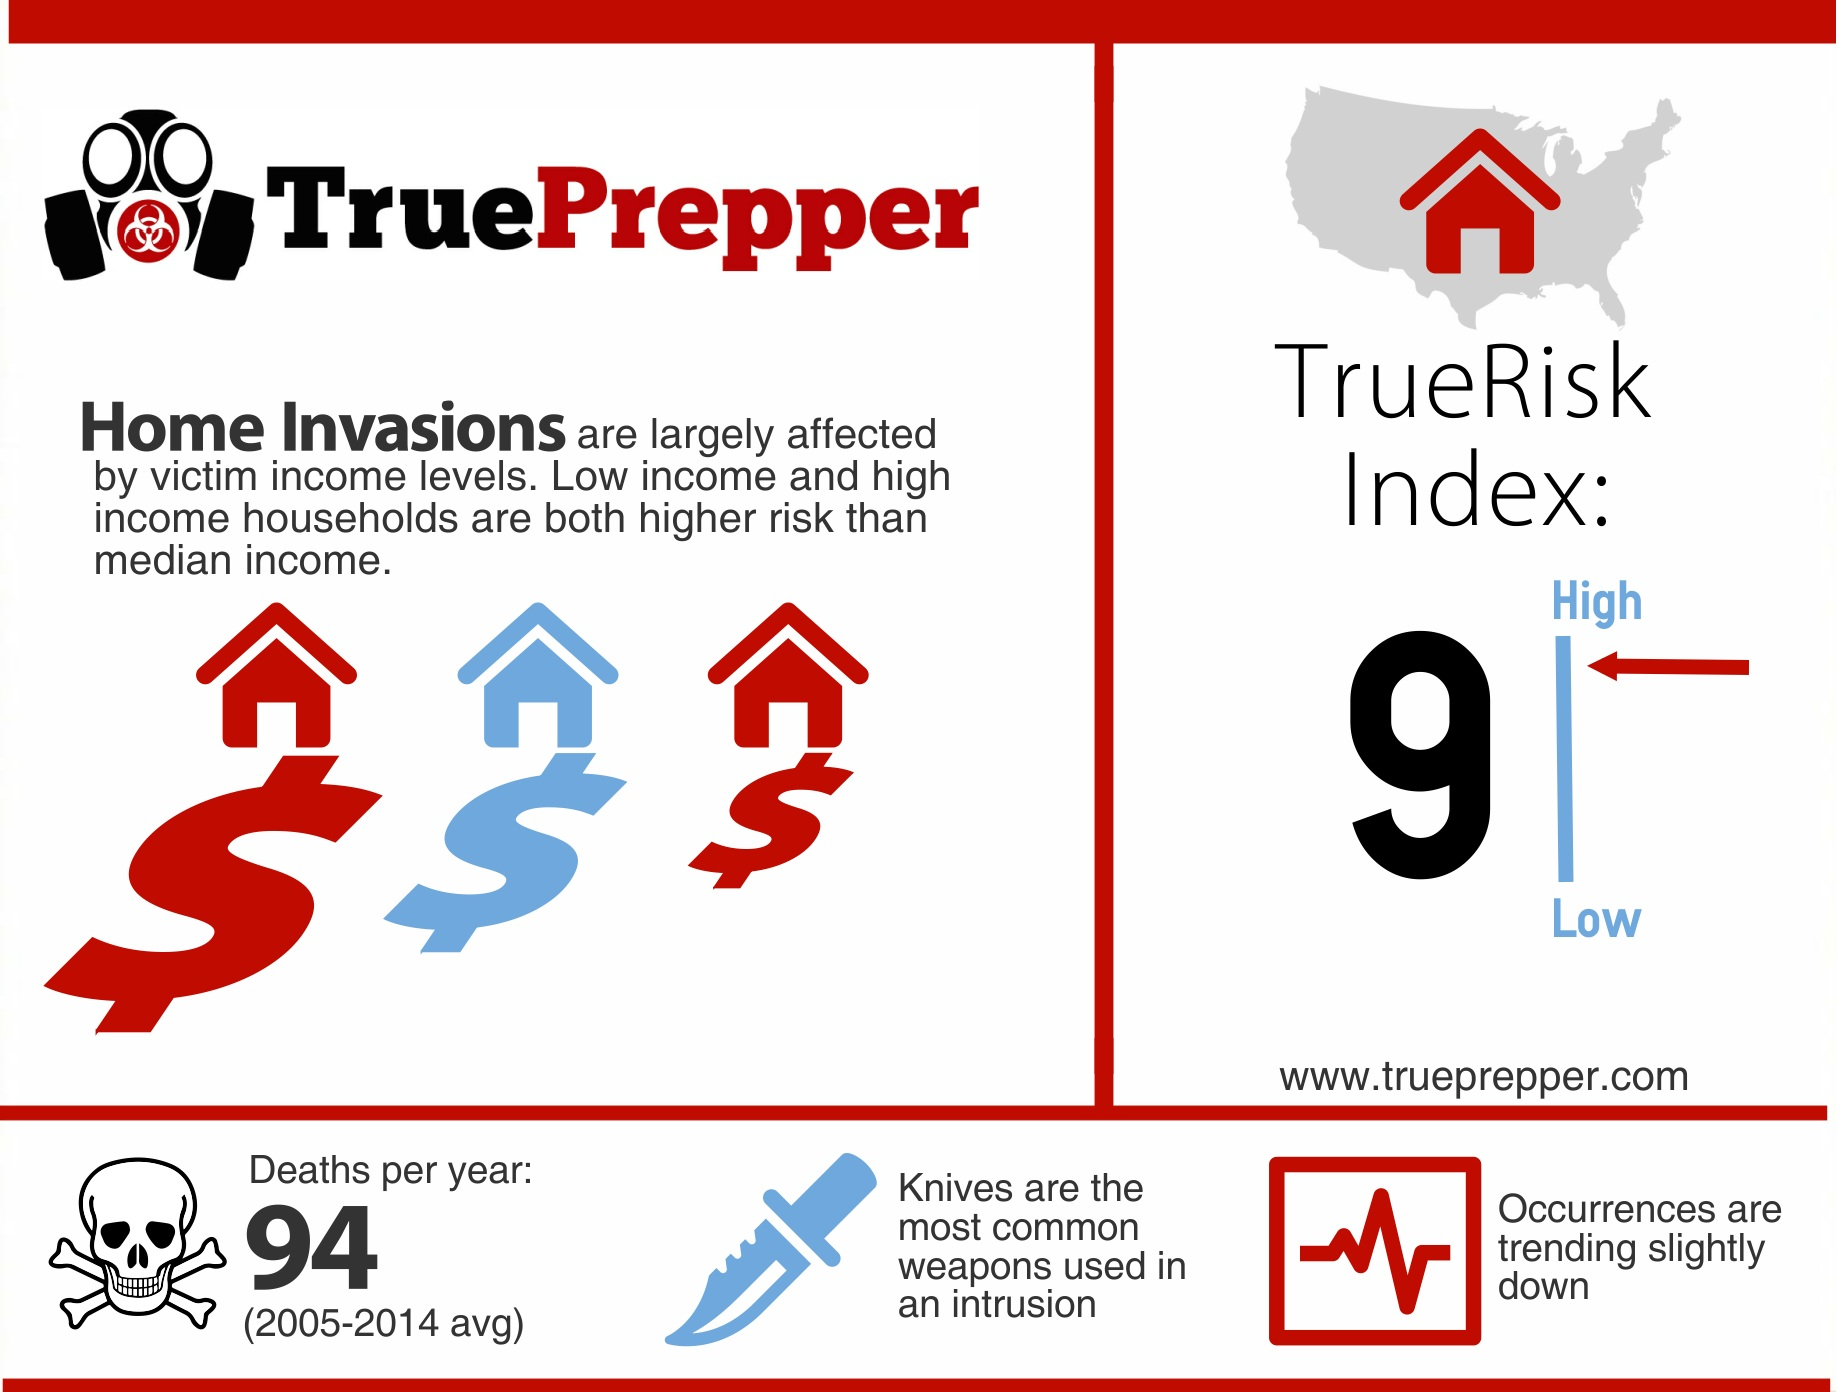 TrueRisk Home Invasions